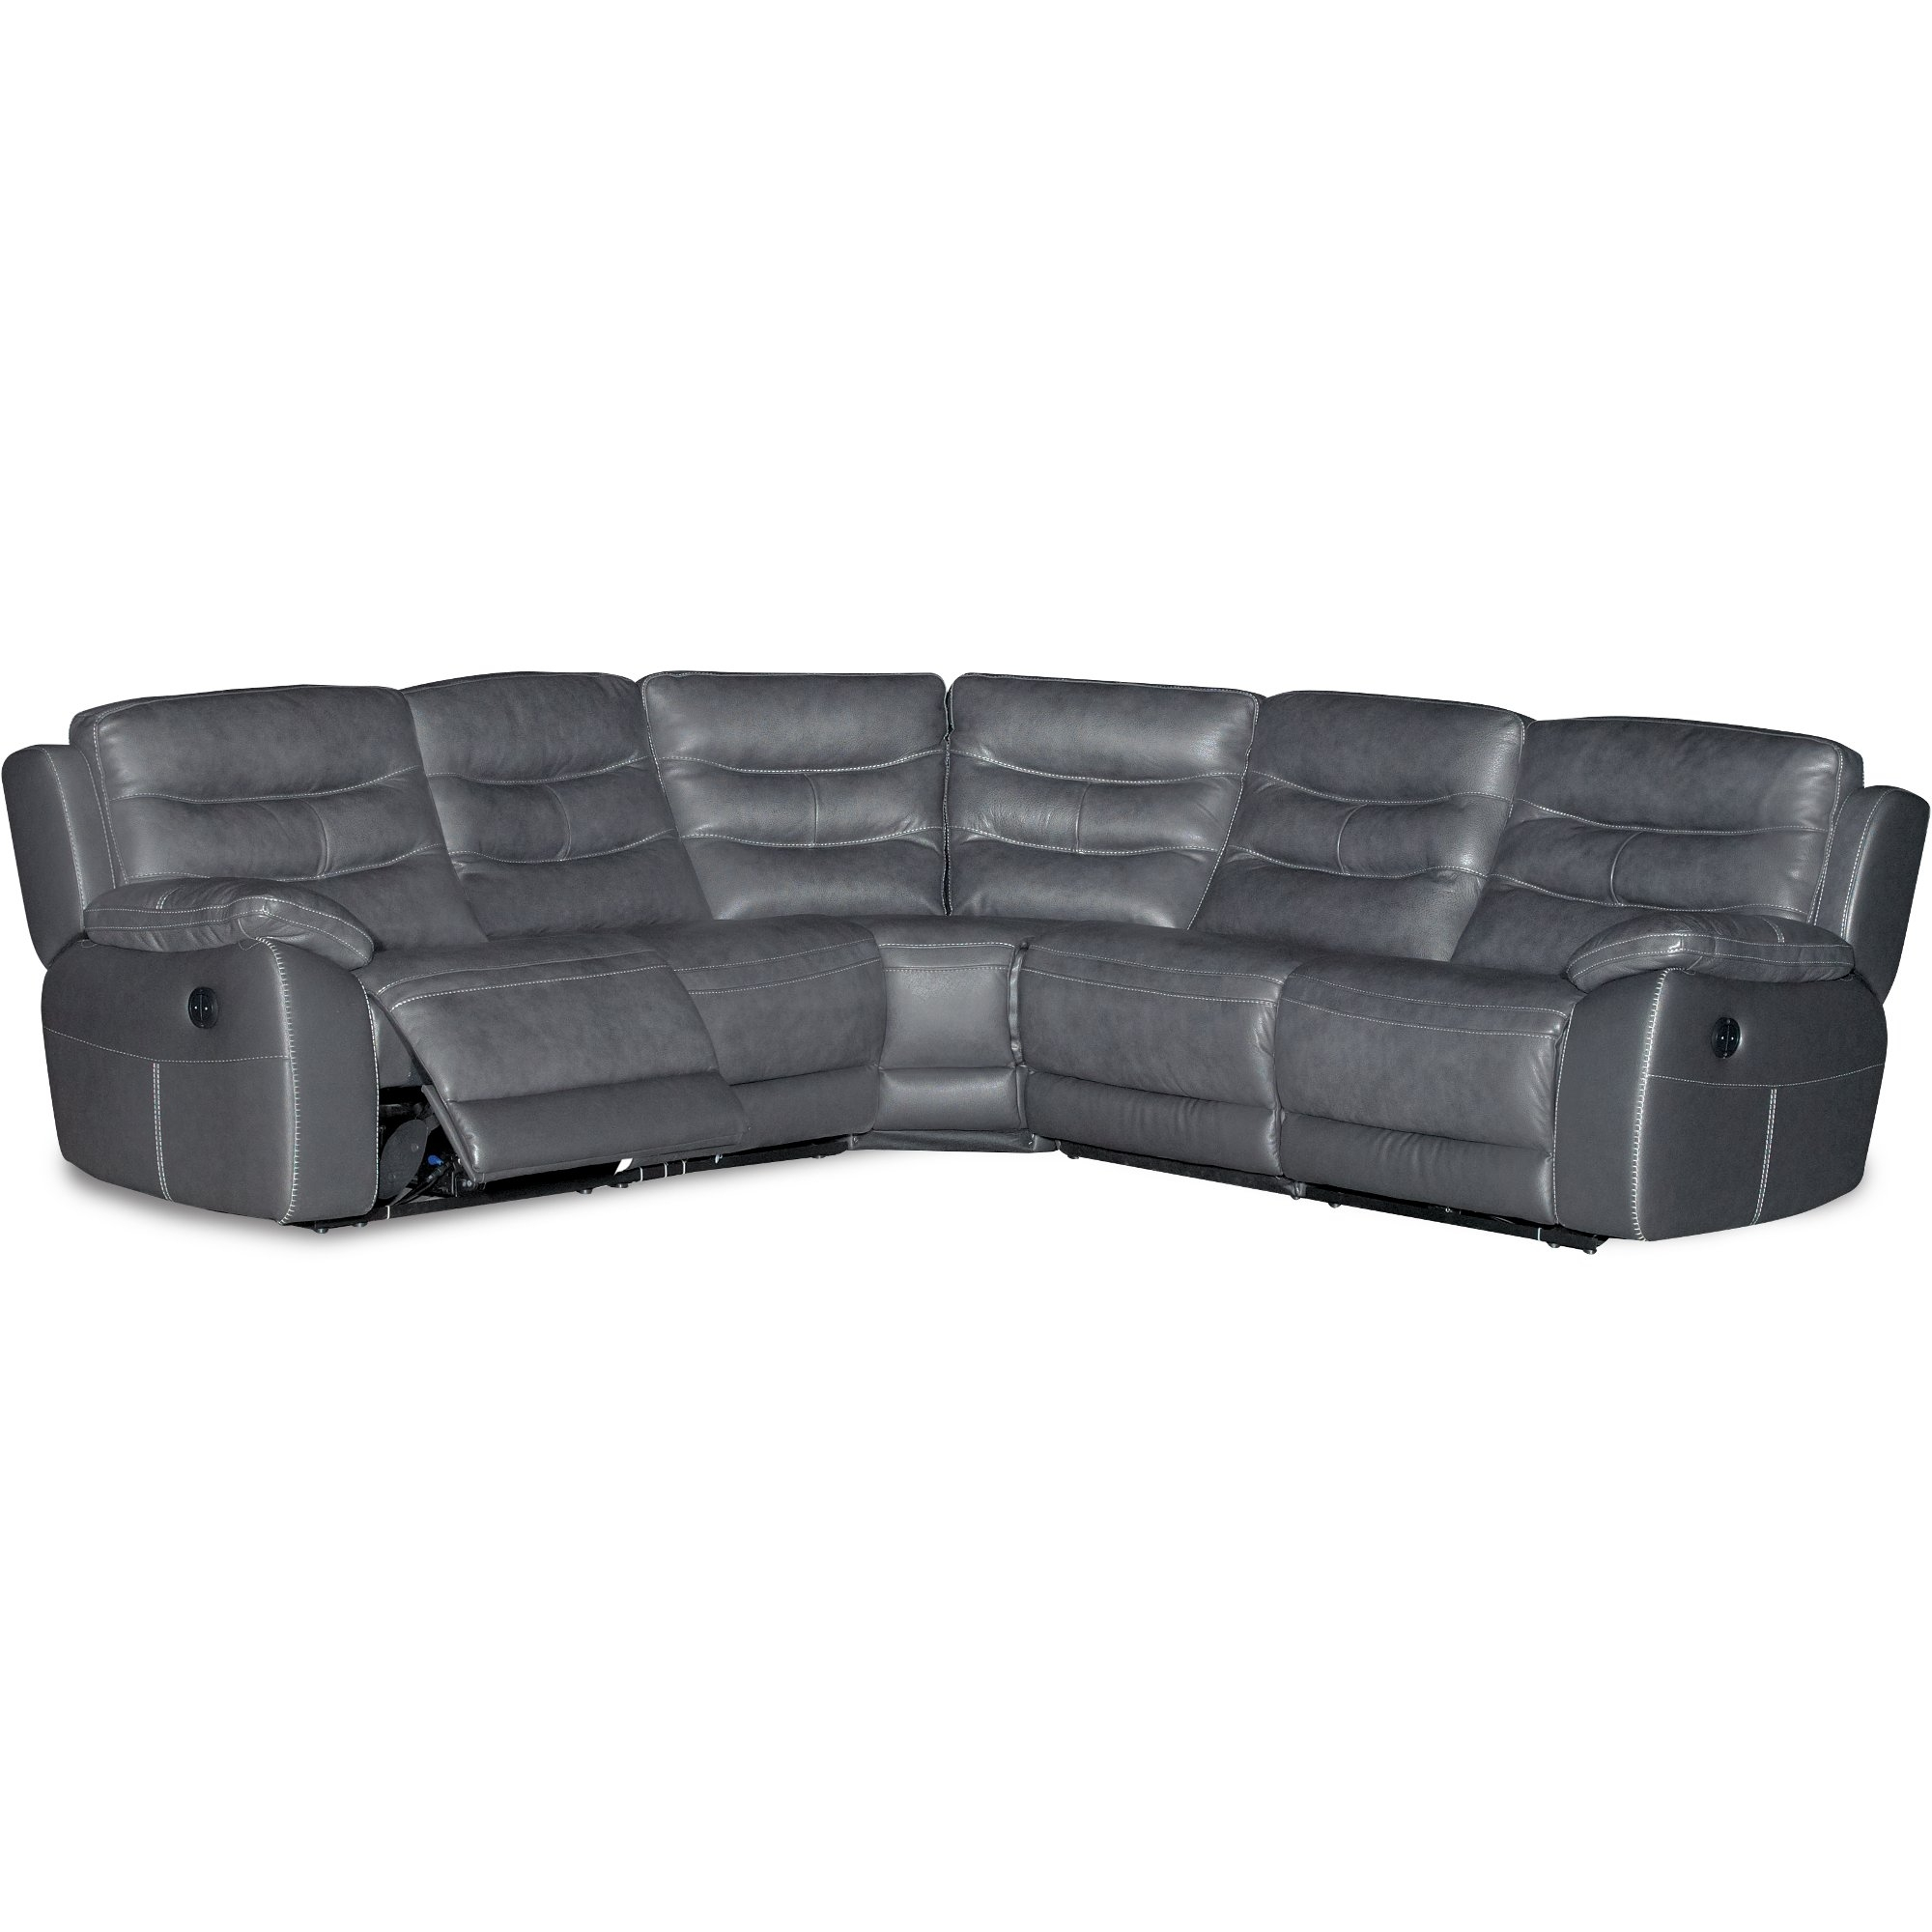 Charcoal Gray 5 Piece Power Reclining Sectional Sofa - Shawn | Rc throughout Denali Charcoal Grey 6 Piece Reclining Sectionals With 2 Power Headrests (Image 6 of 30)